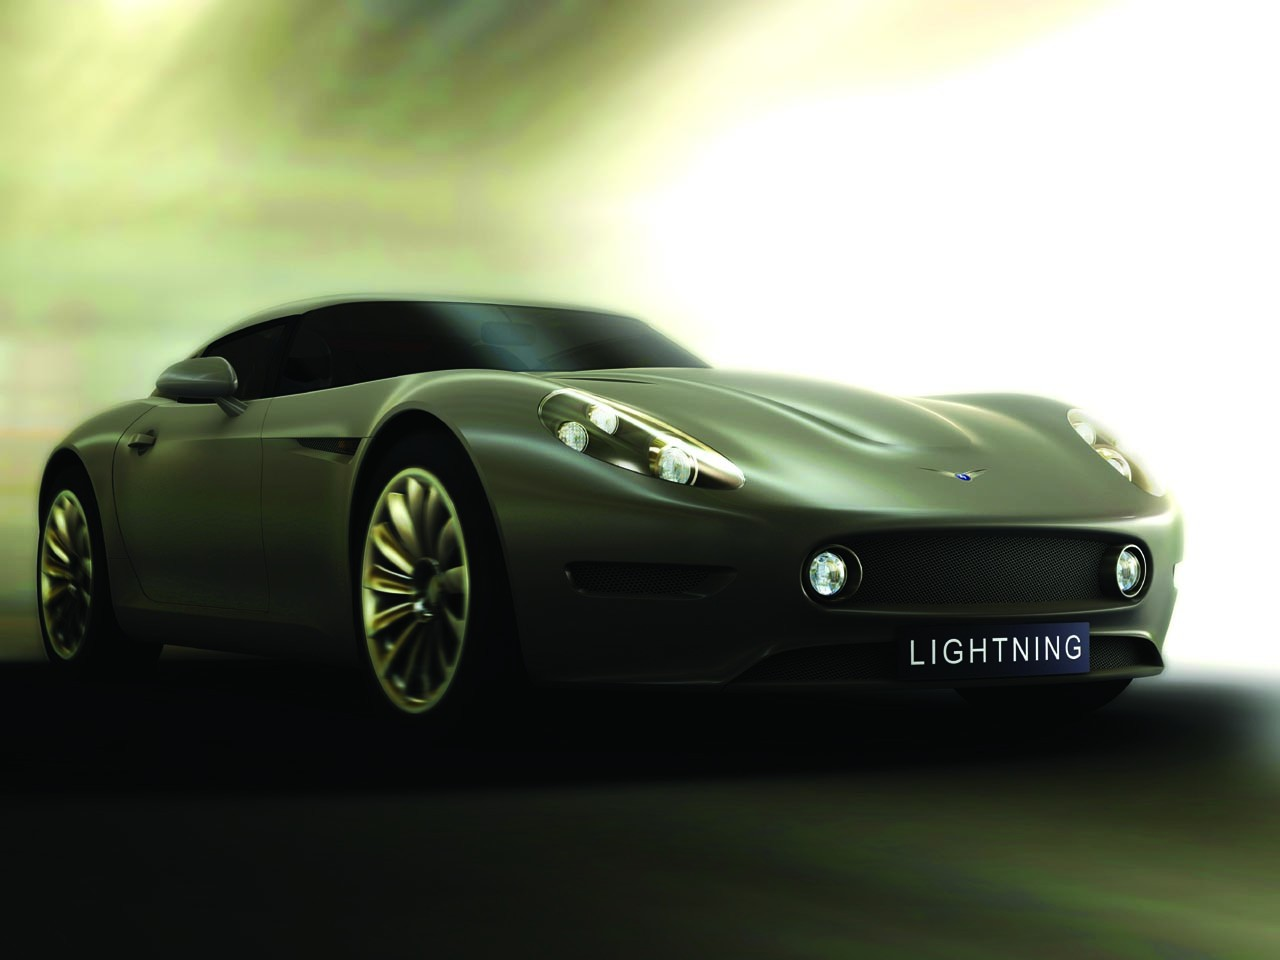 Wallpapers On Electric Cars 1280x960